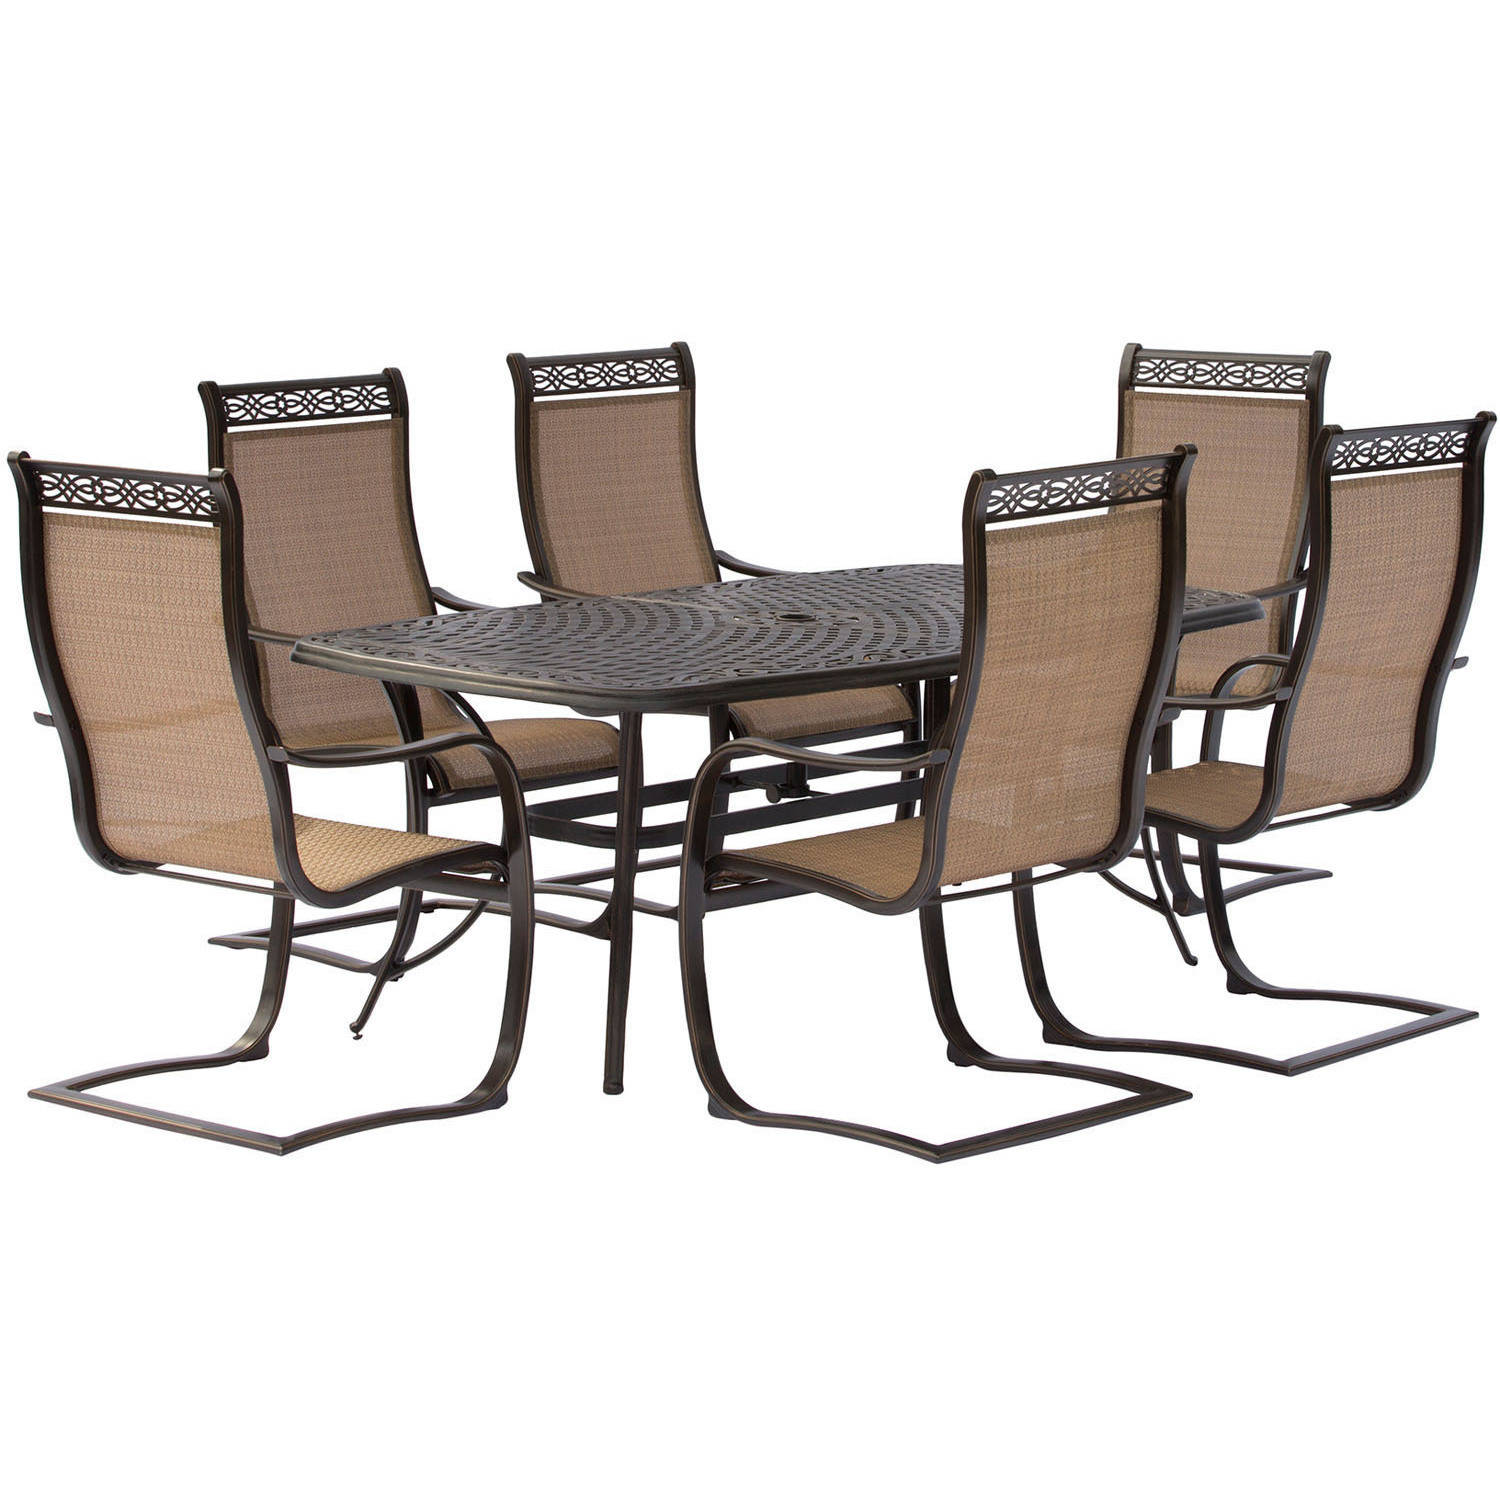 Hanover Manor 7-Piece Outdoor Dining Room Set with C-Spring Chairs by Hanover